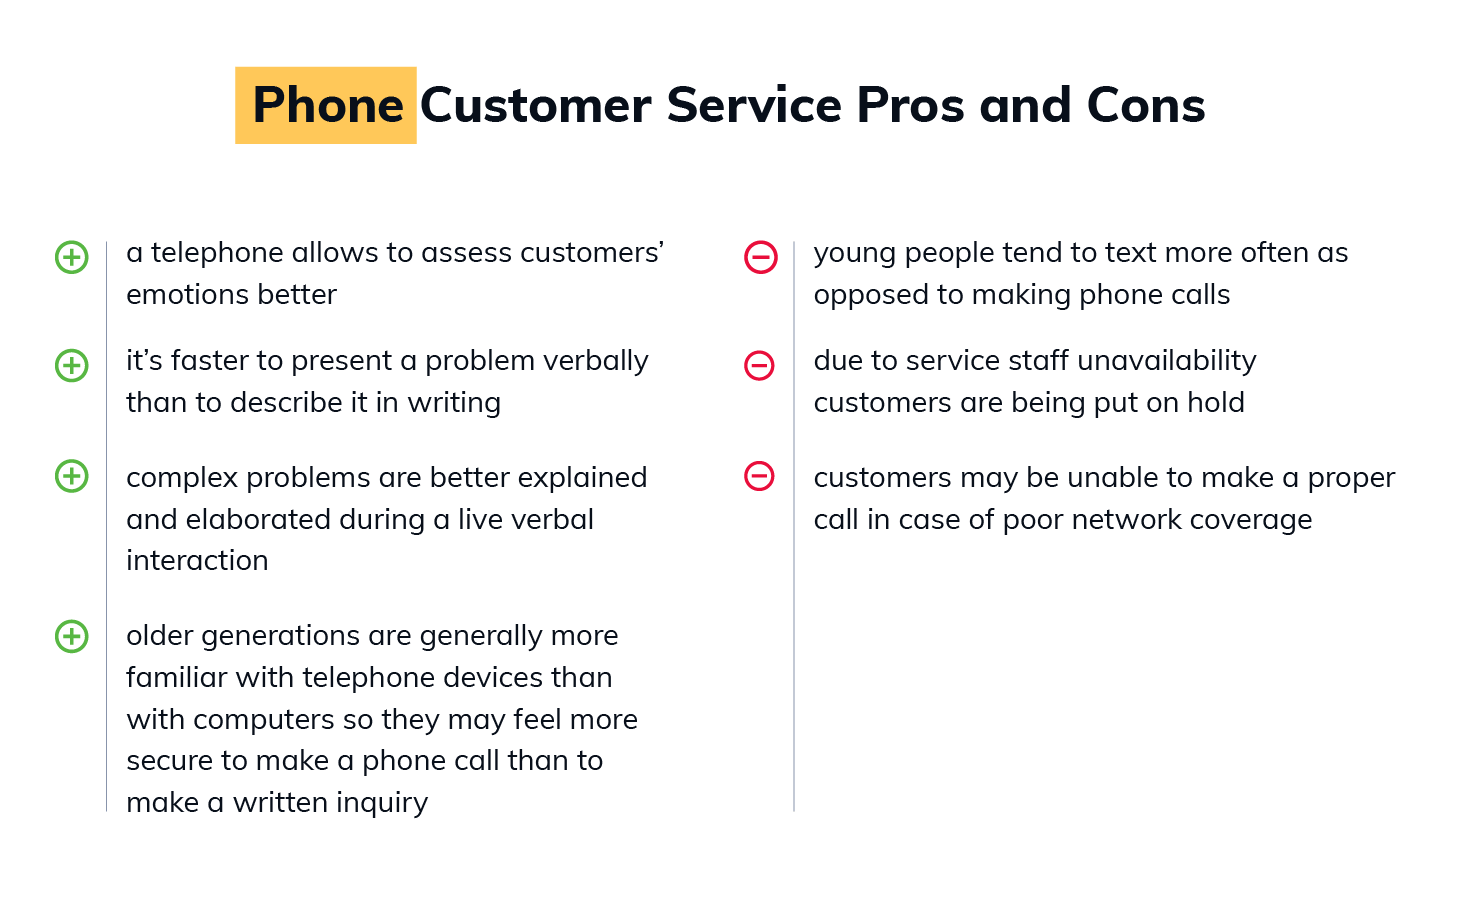 Pros and Cons of phone customer service